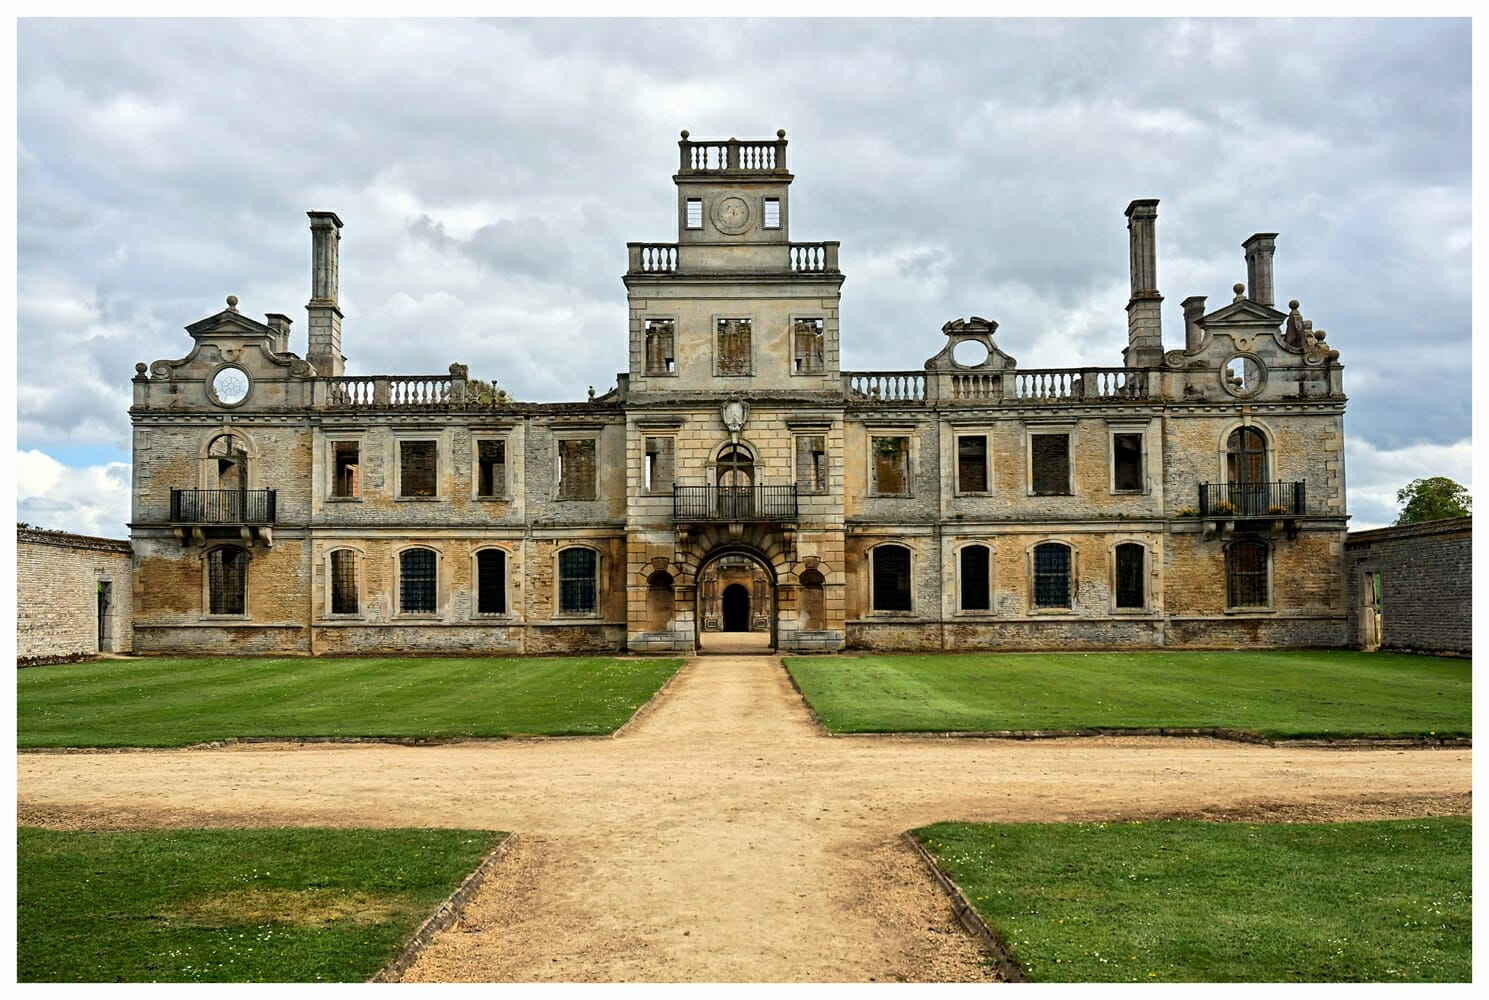 Kirby Hall in Northamptonshire